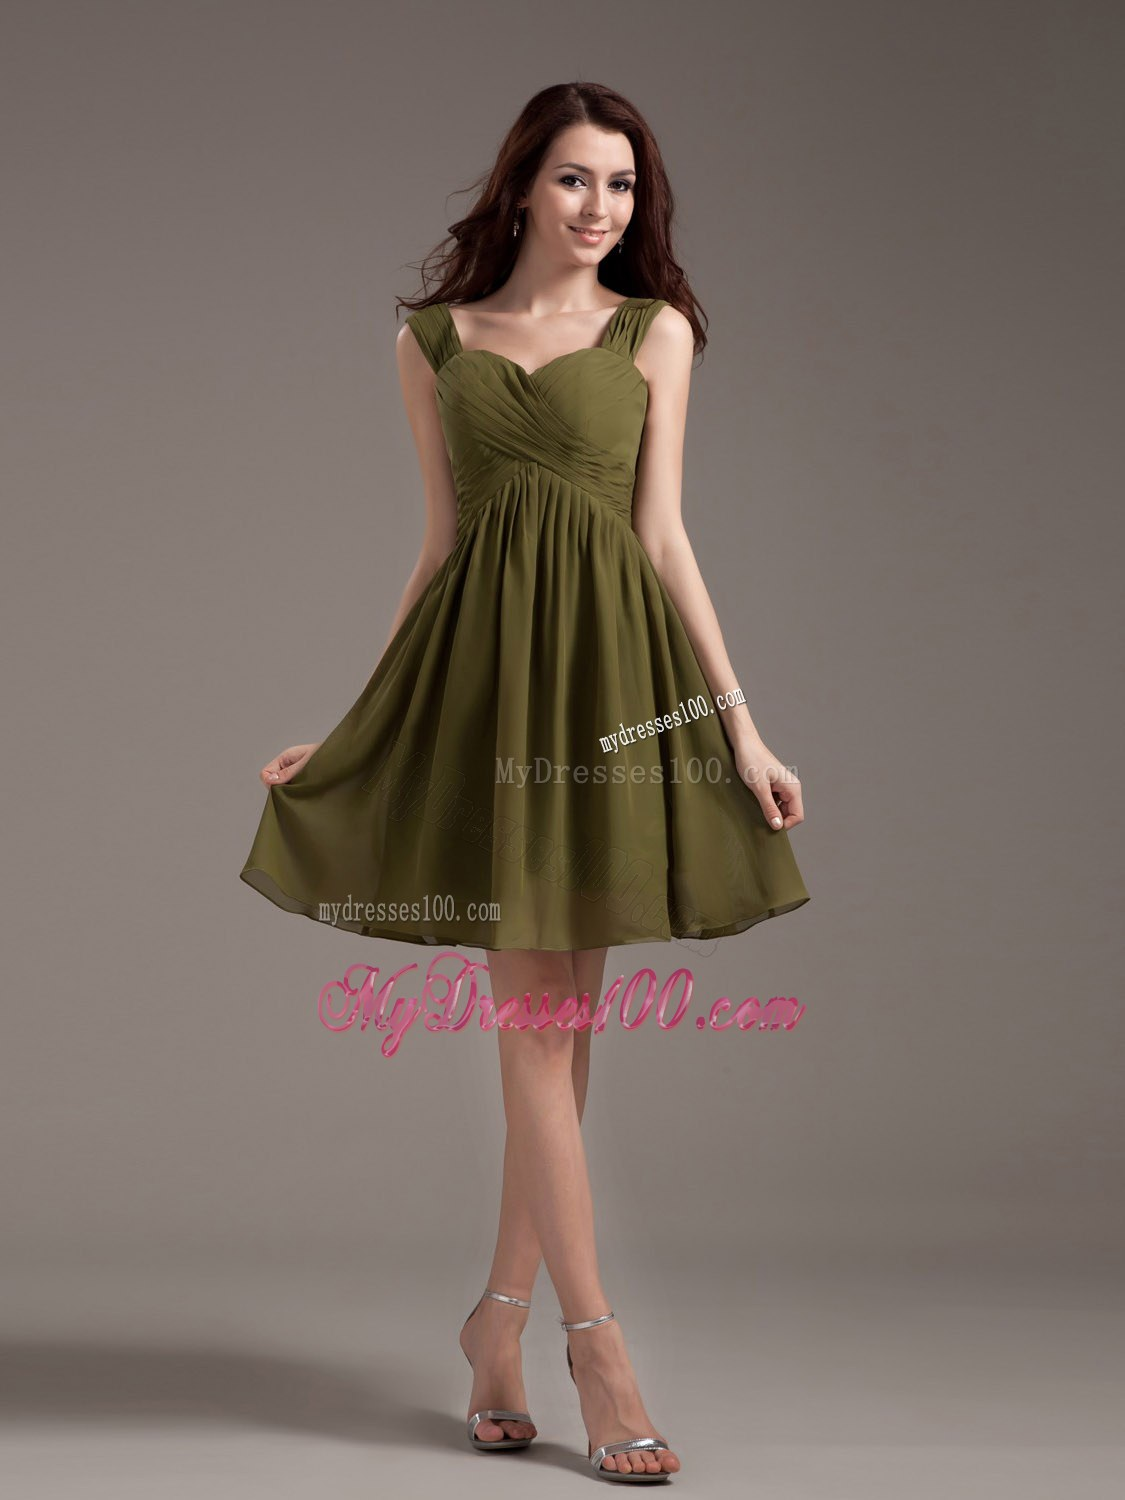 Olive Green Ruched Chiffon Knee-length Bridesmaid Dress